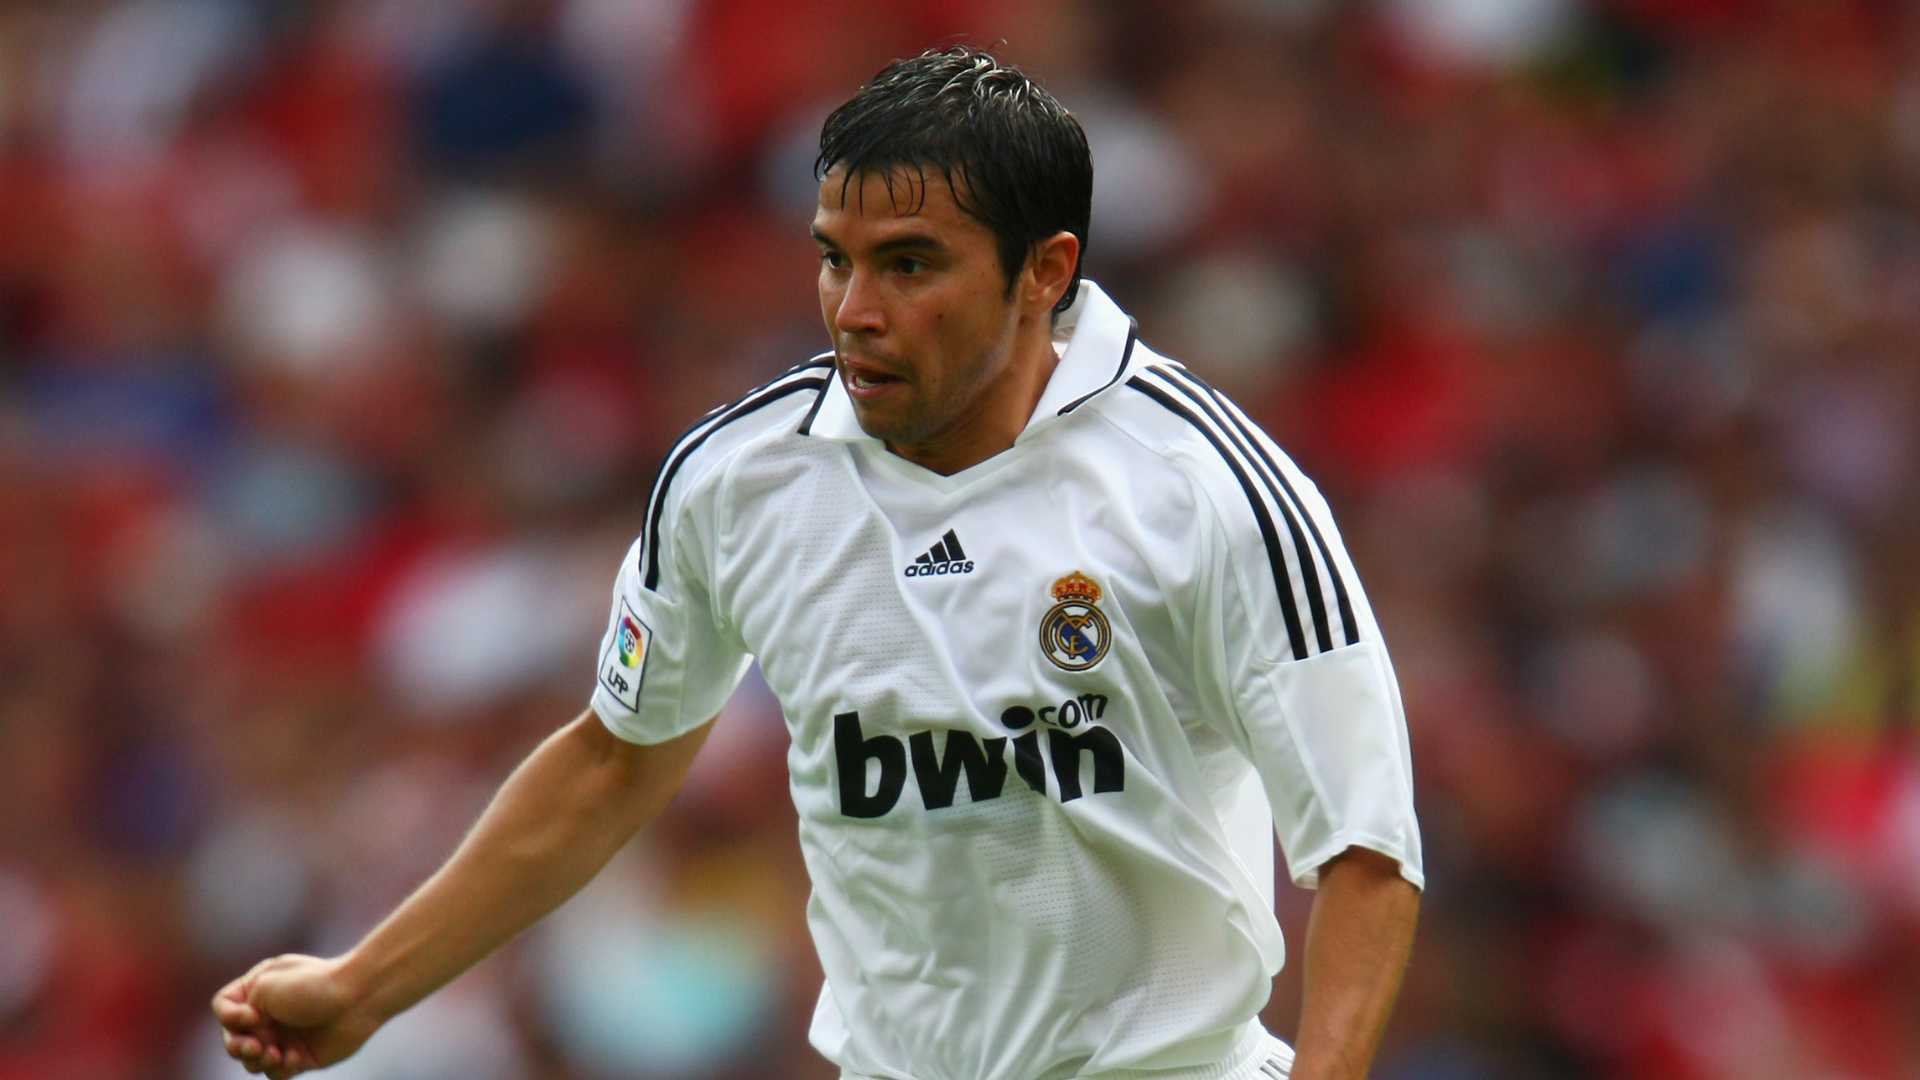 Javier Saviola ex Real Madrid player